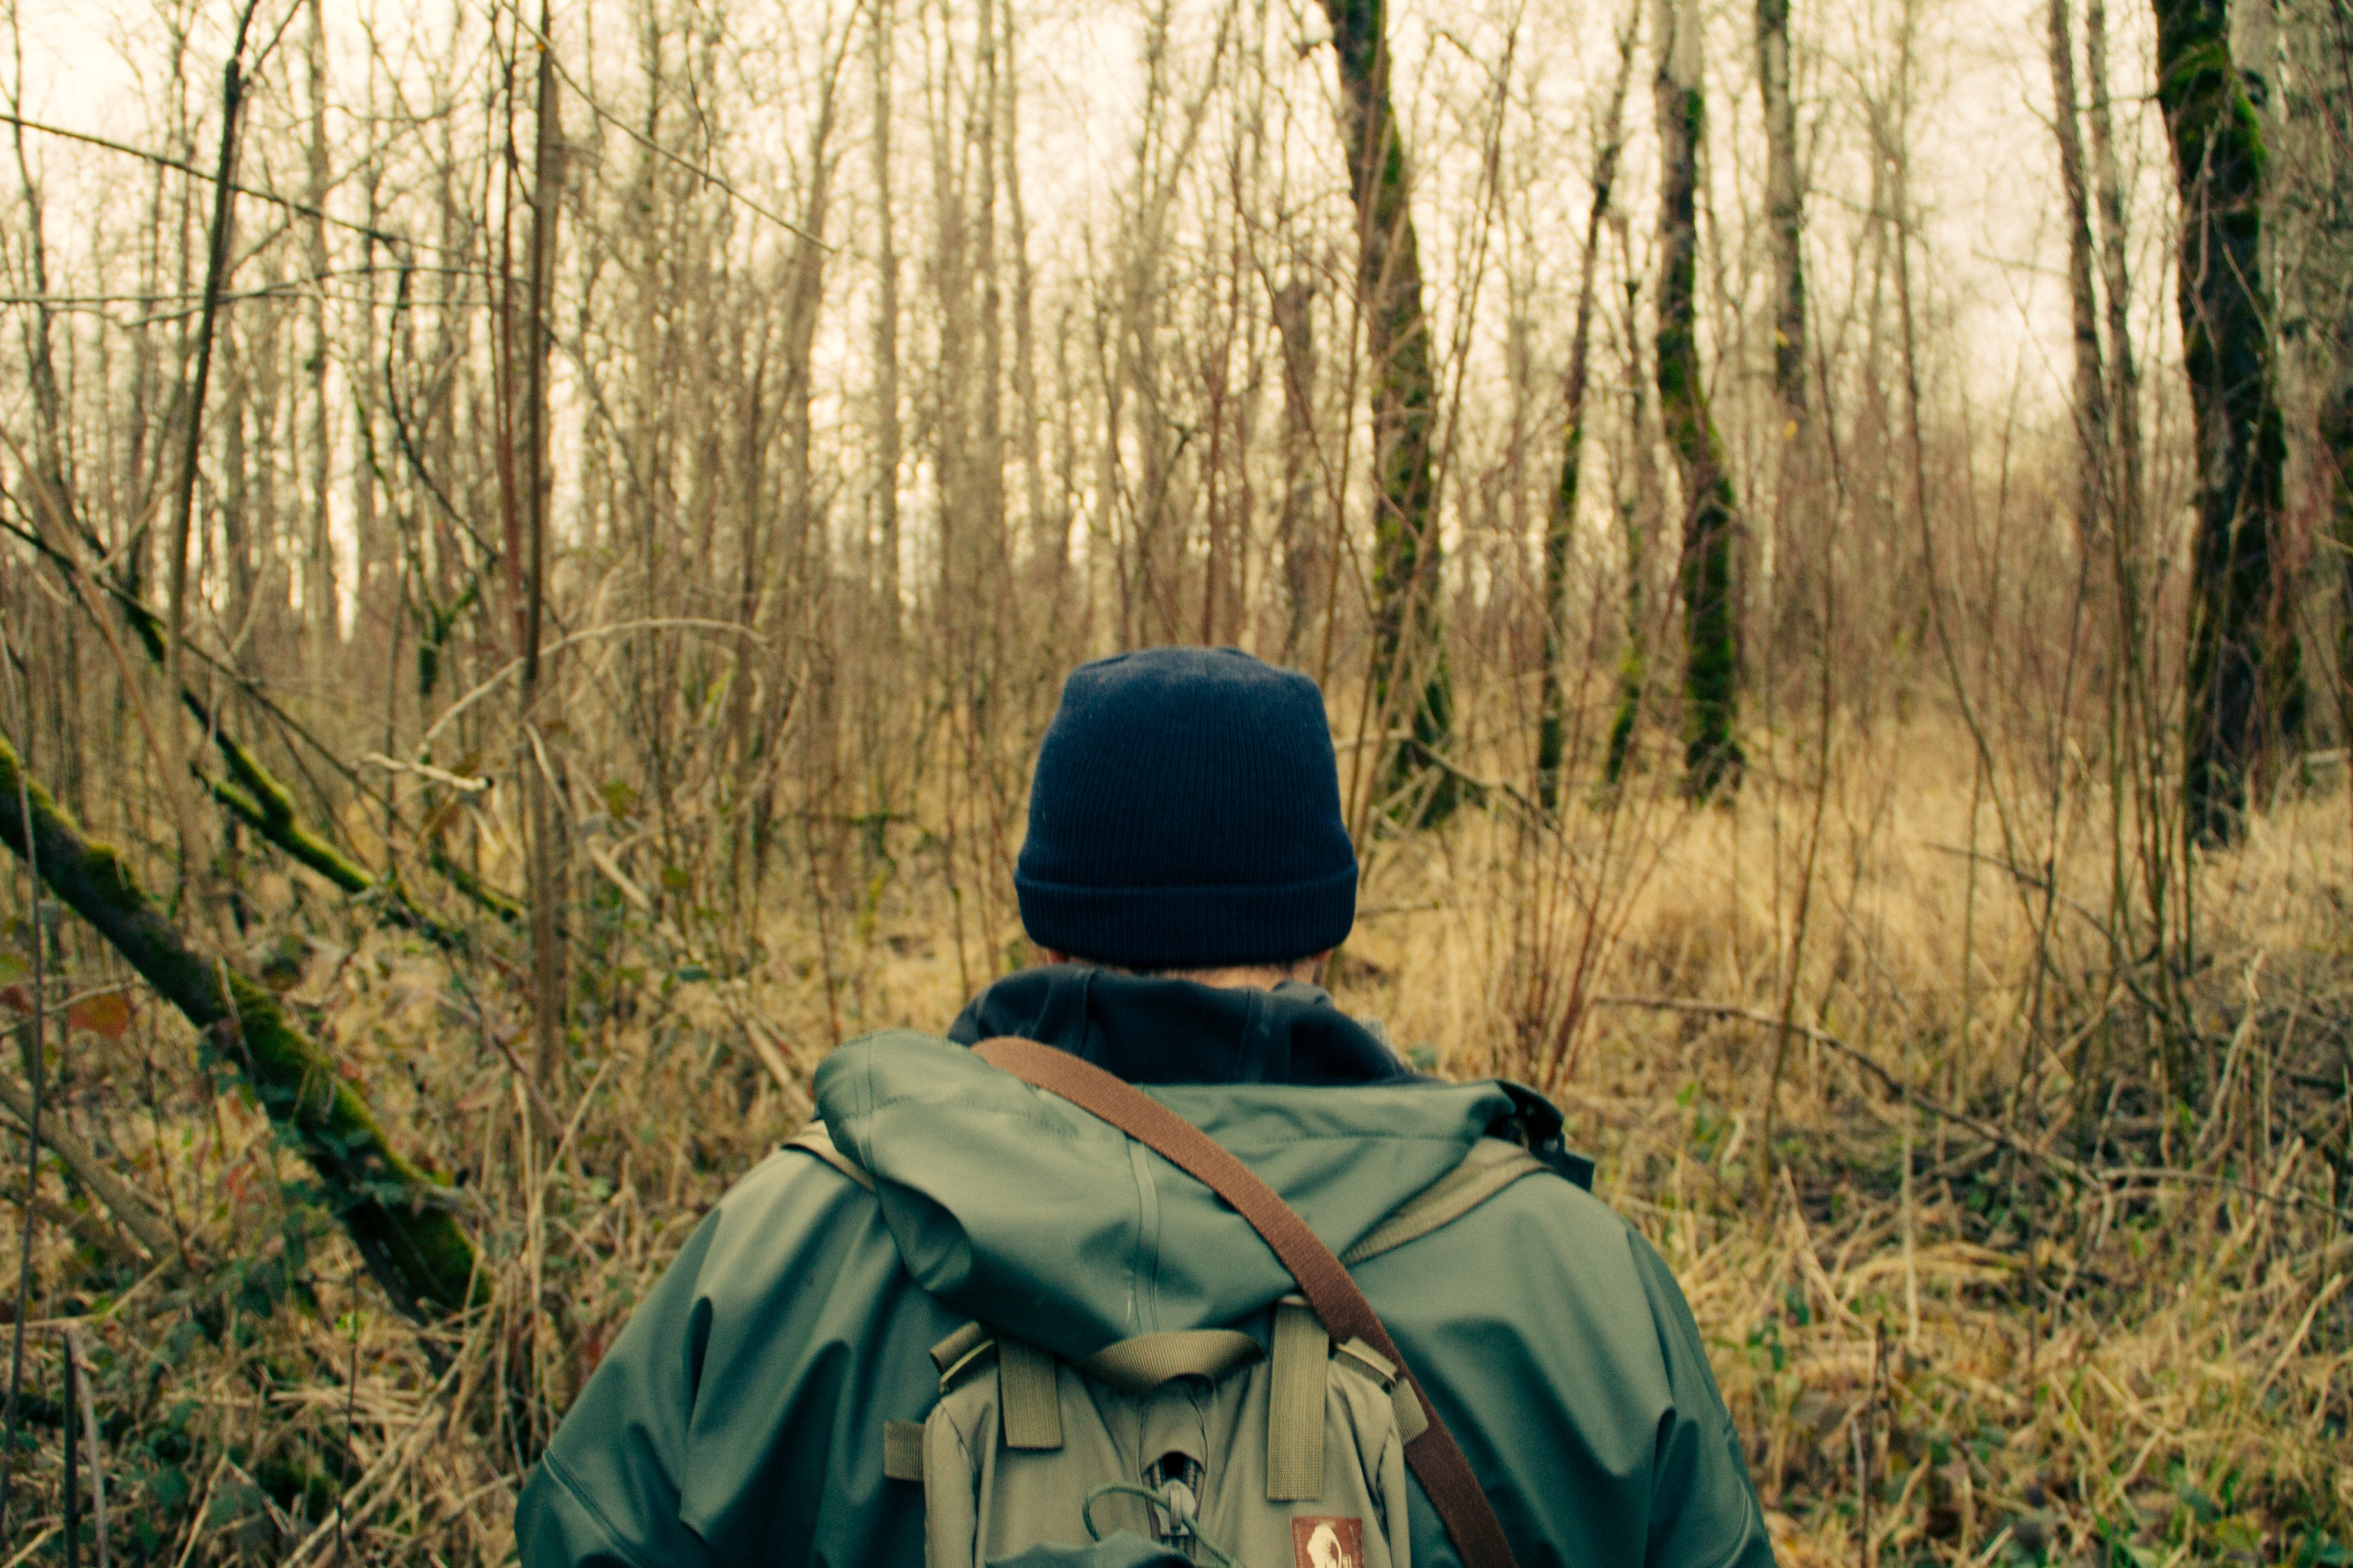 A man in outdoor clothes walking into a wooded forest.